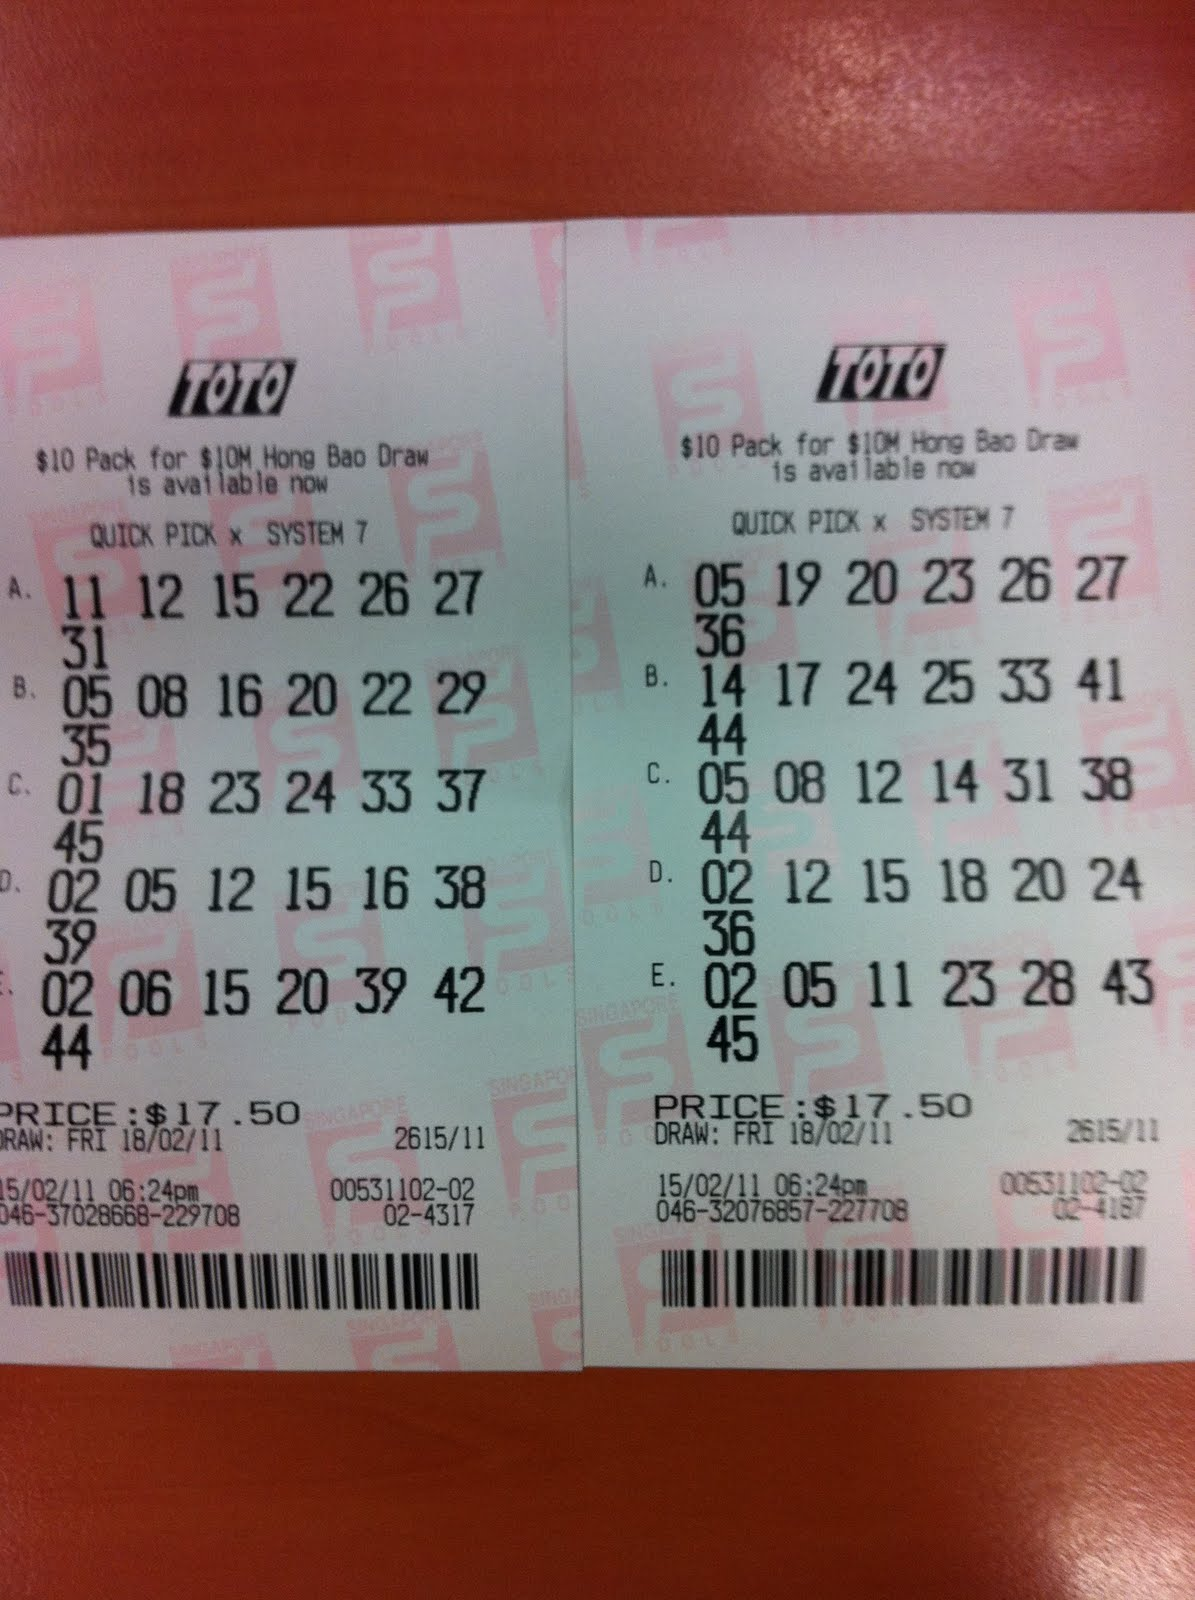 HEALTH INFORMATION SERVICES: The $10M TOTO Winning Ticket Numbers